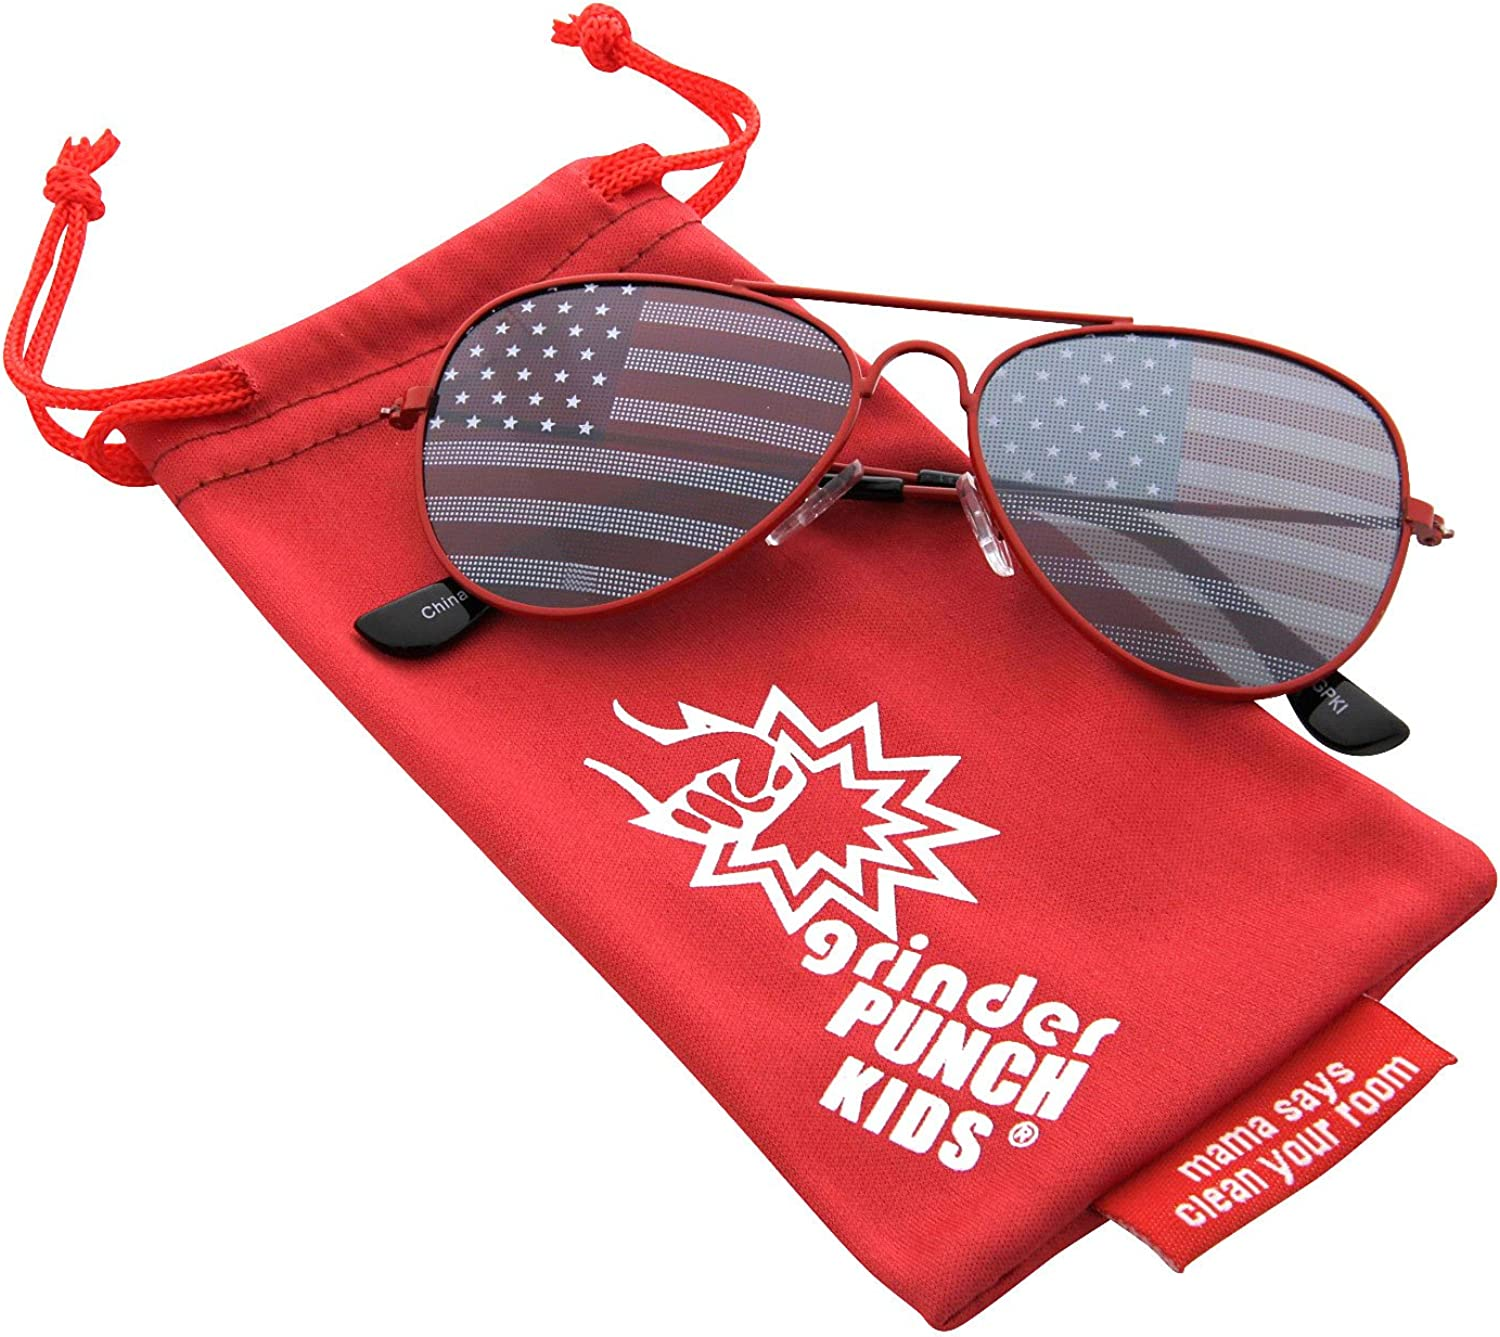 grinderPUNCH KIDS Childrens American Flag Aviator Sunglasses